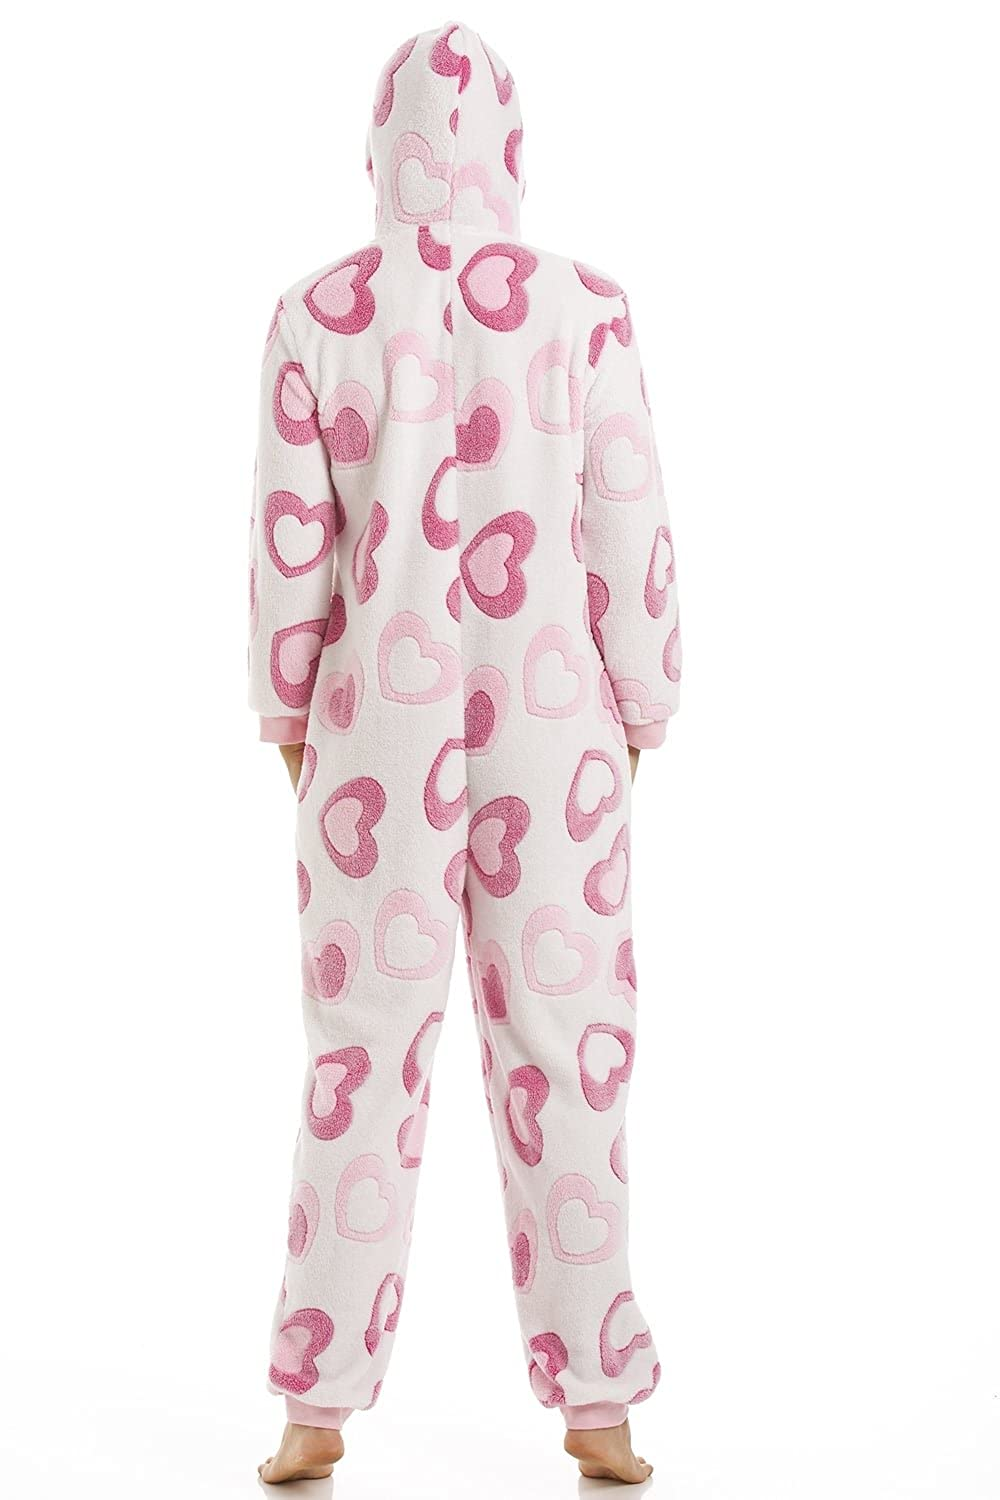 Amazon.com: Camille Ladies Nightwear Pink and White Heart Super Soft Fleece Hooded Onesie: Camille: Clothing